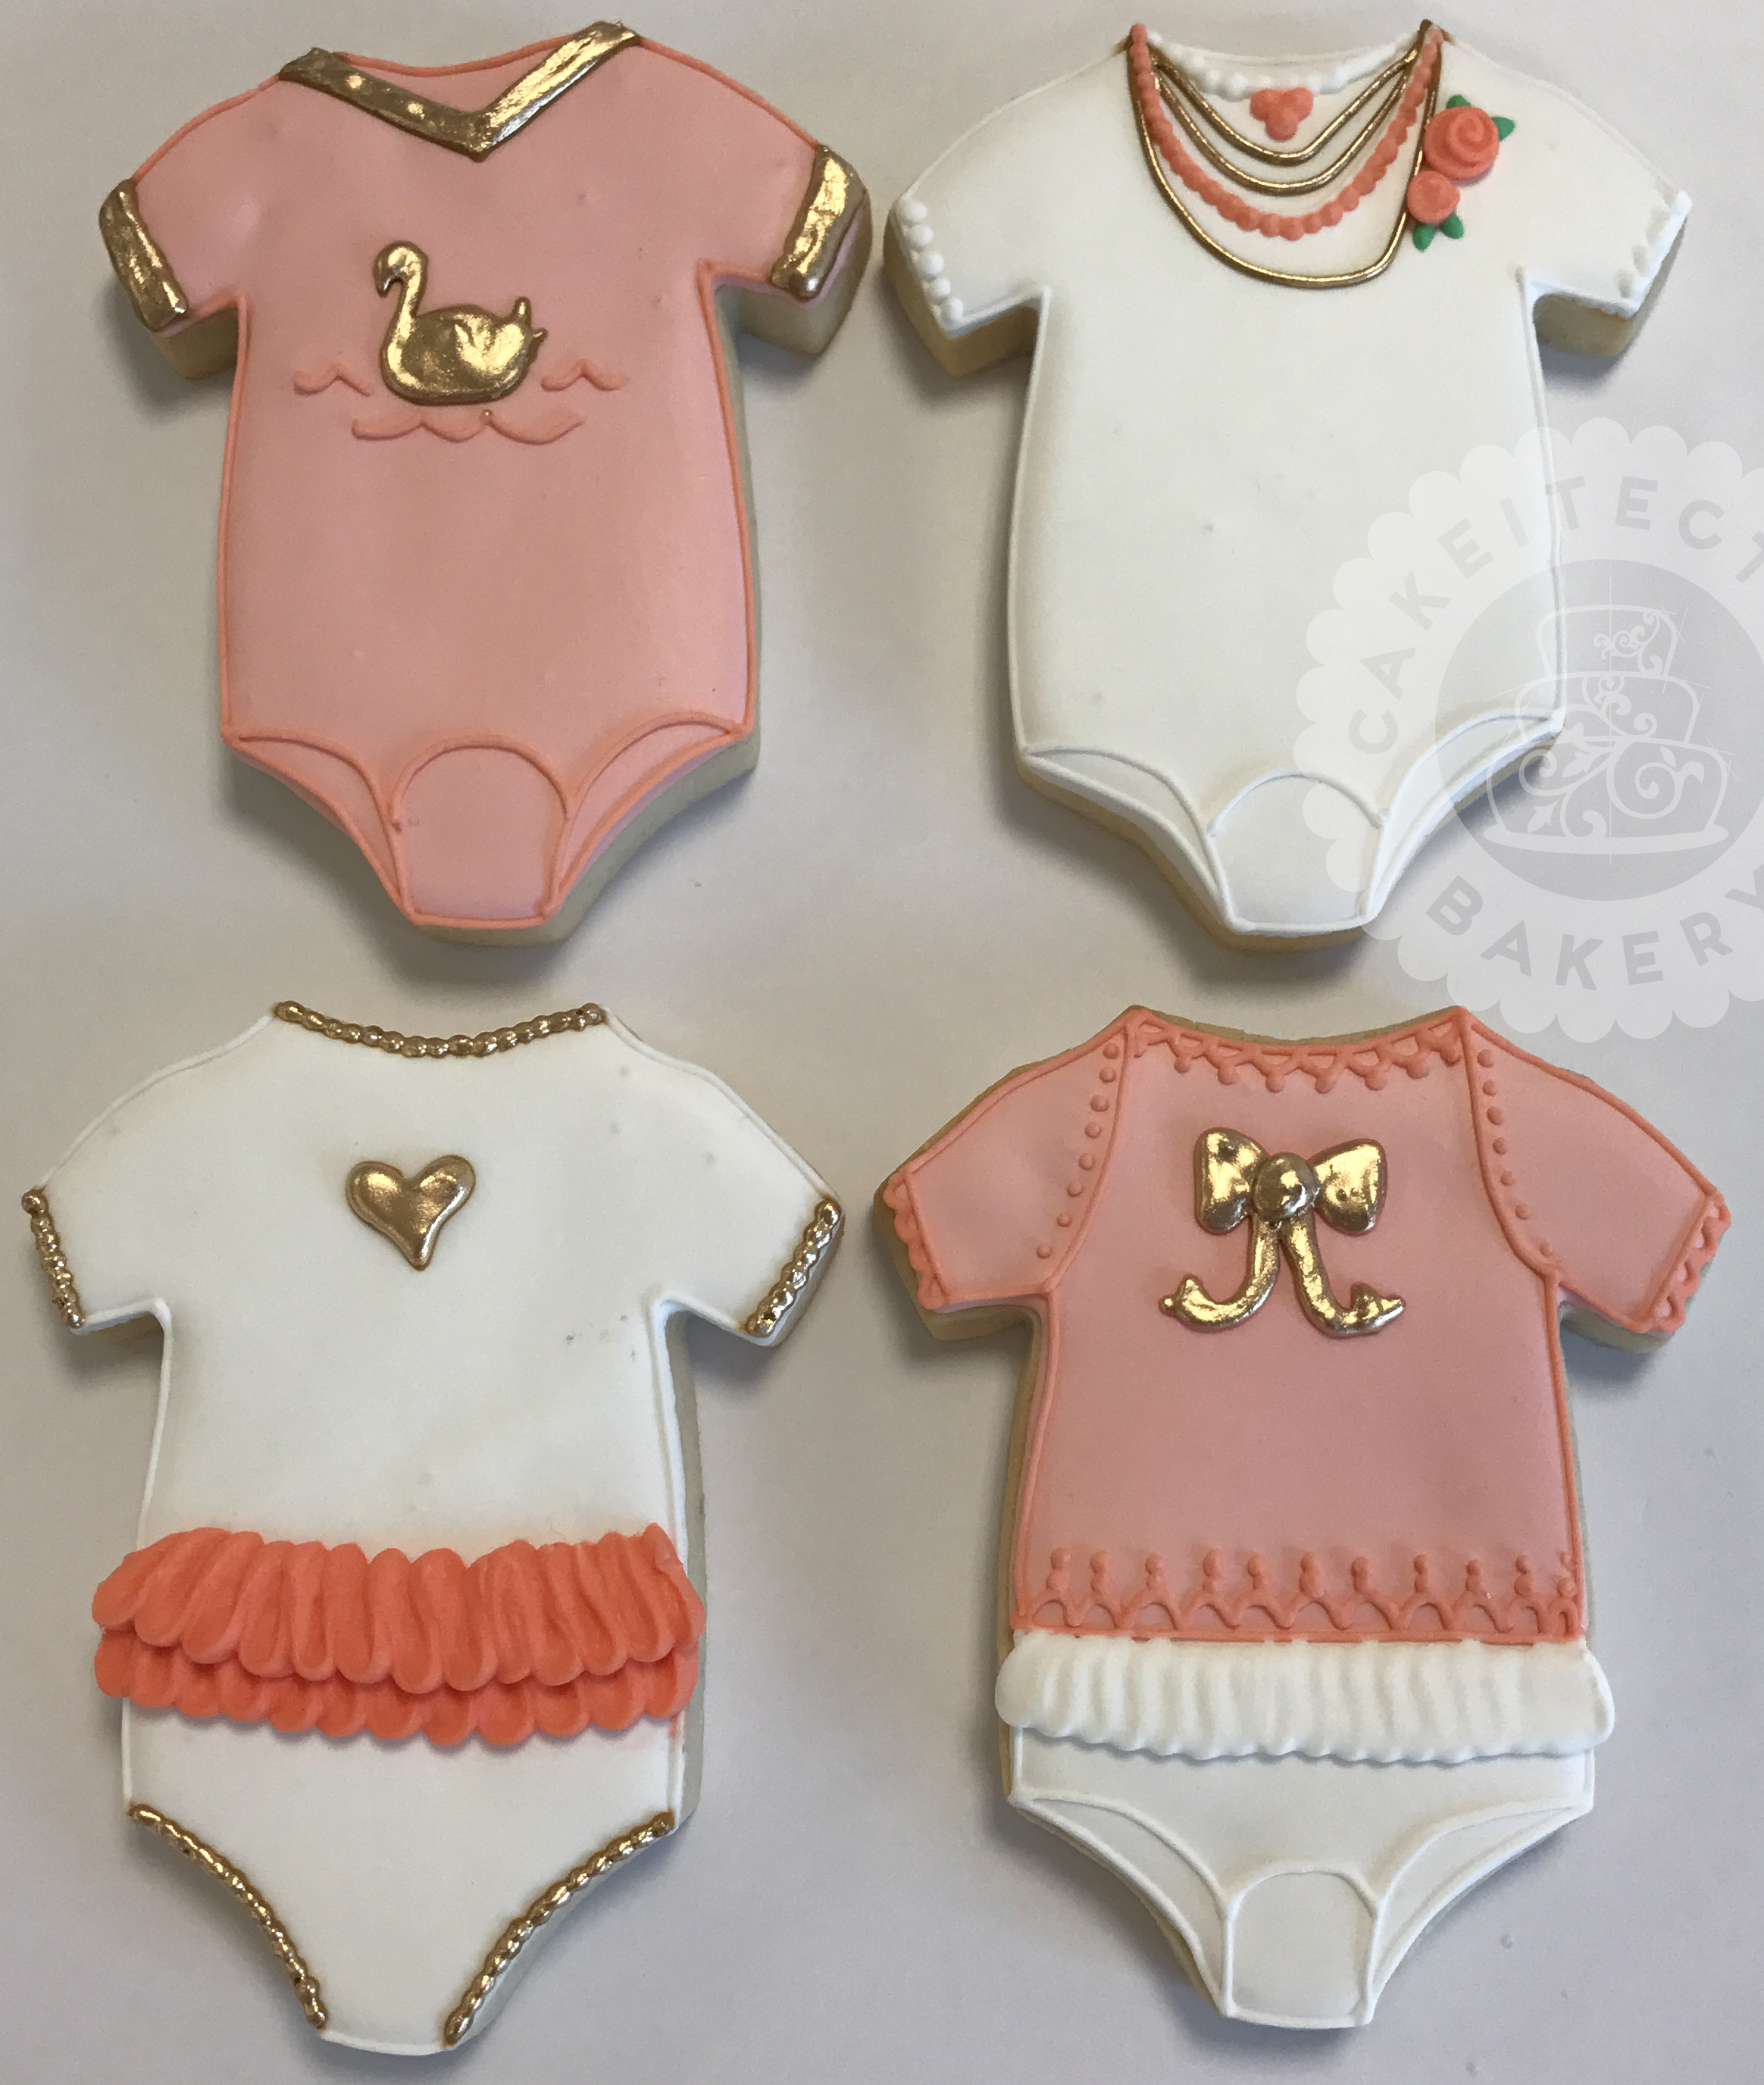 Cakeitecture Bakery 1731 baby shower cookies.jpg